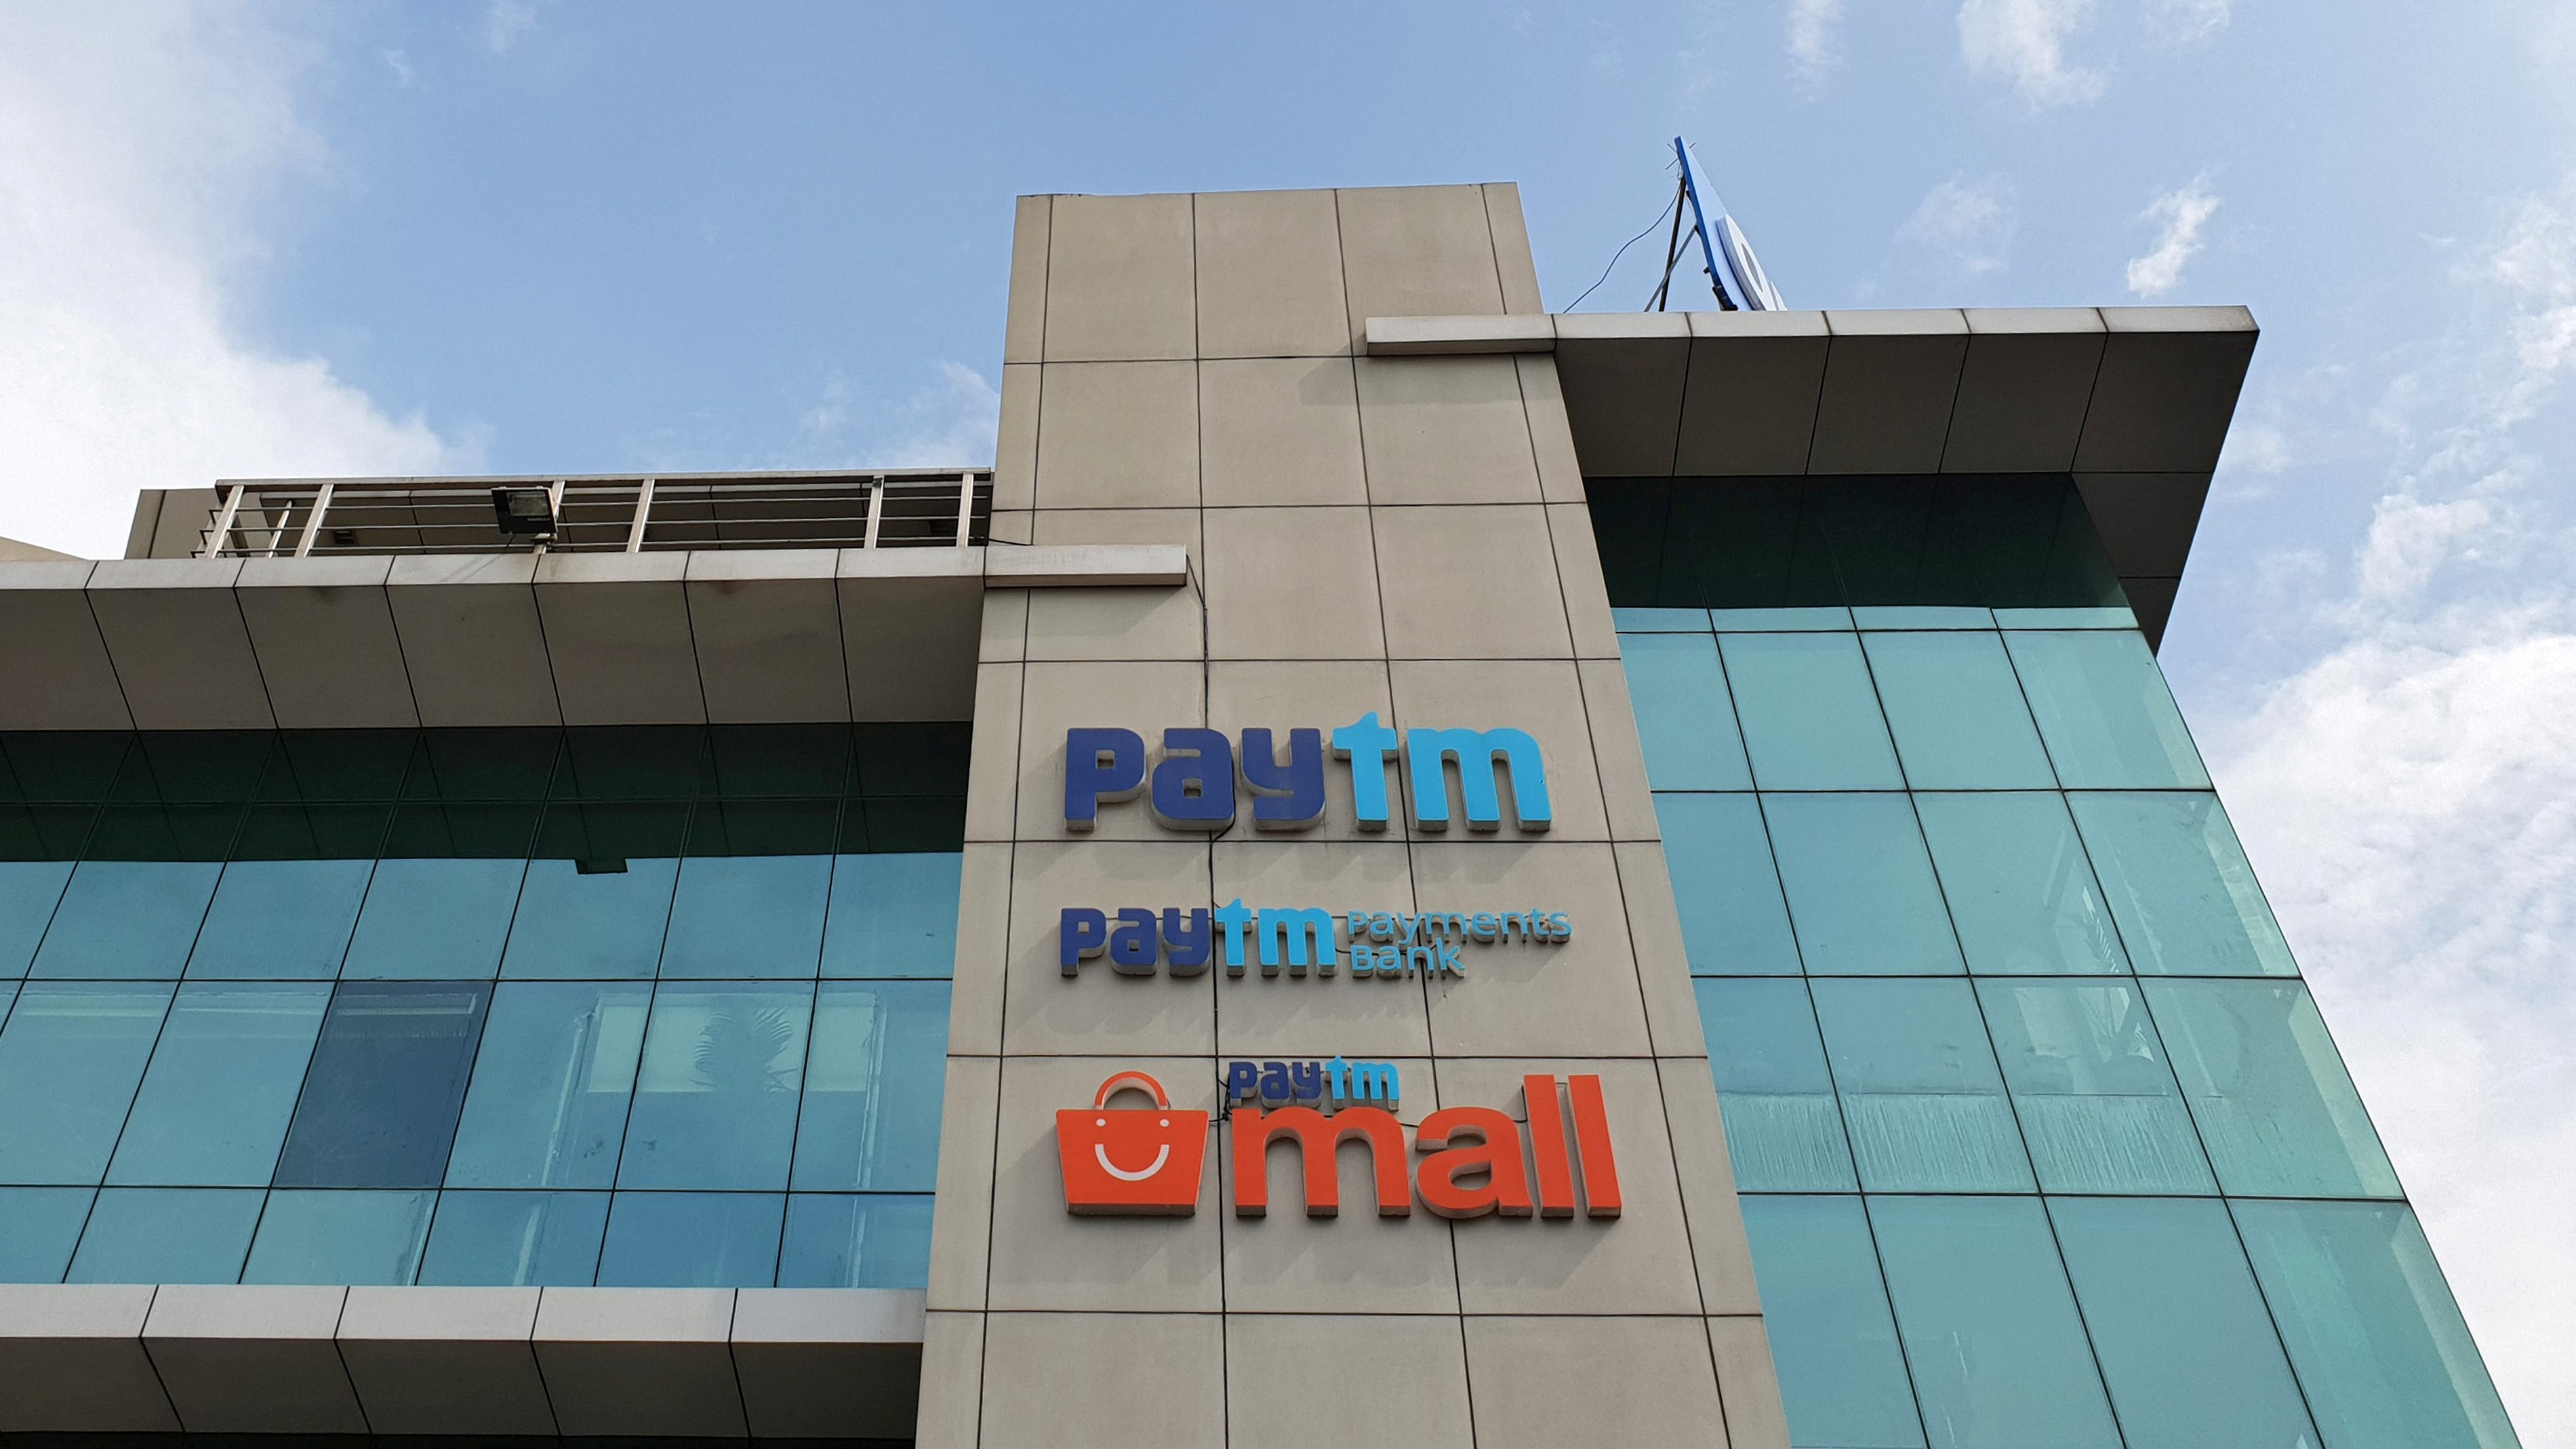 The headquarters for Paytm, India's leading digital payments firm, is pictured in Noida